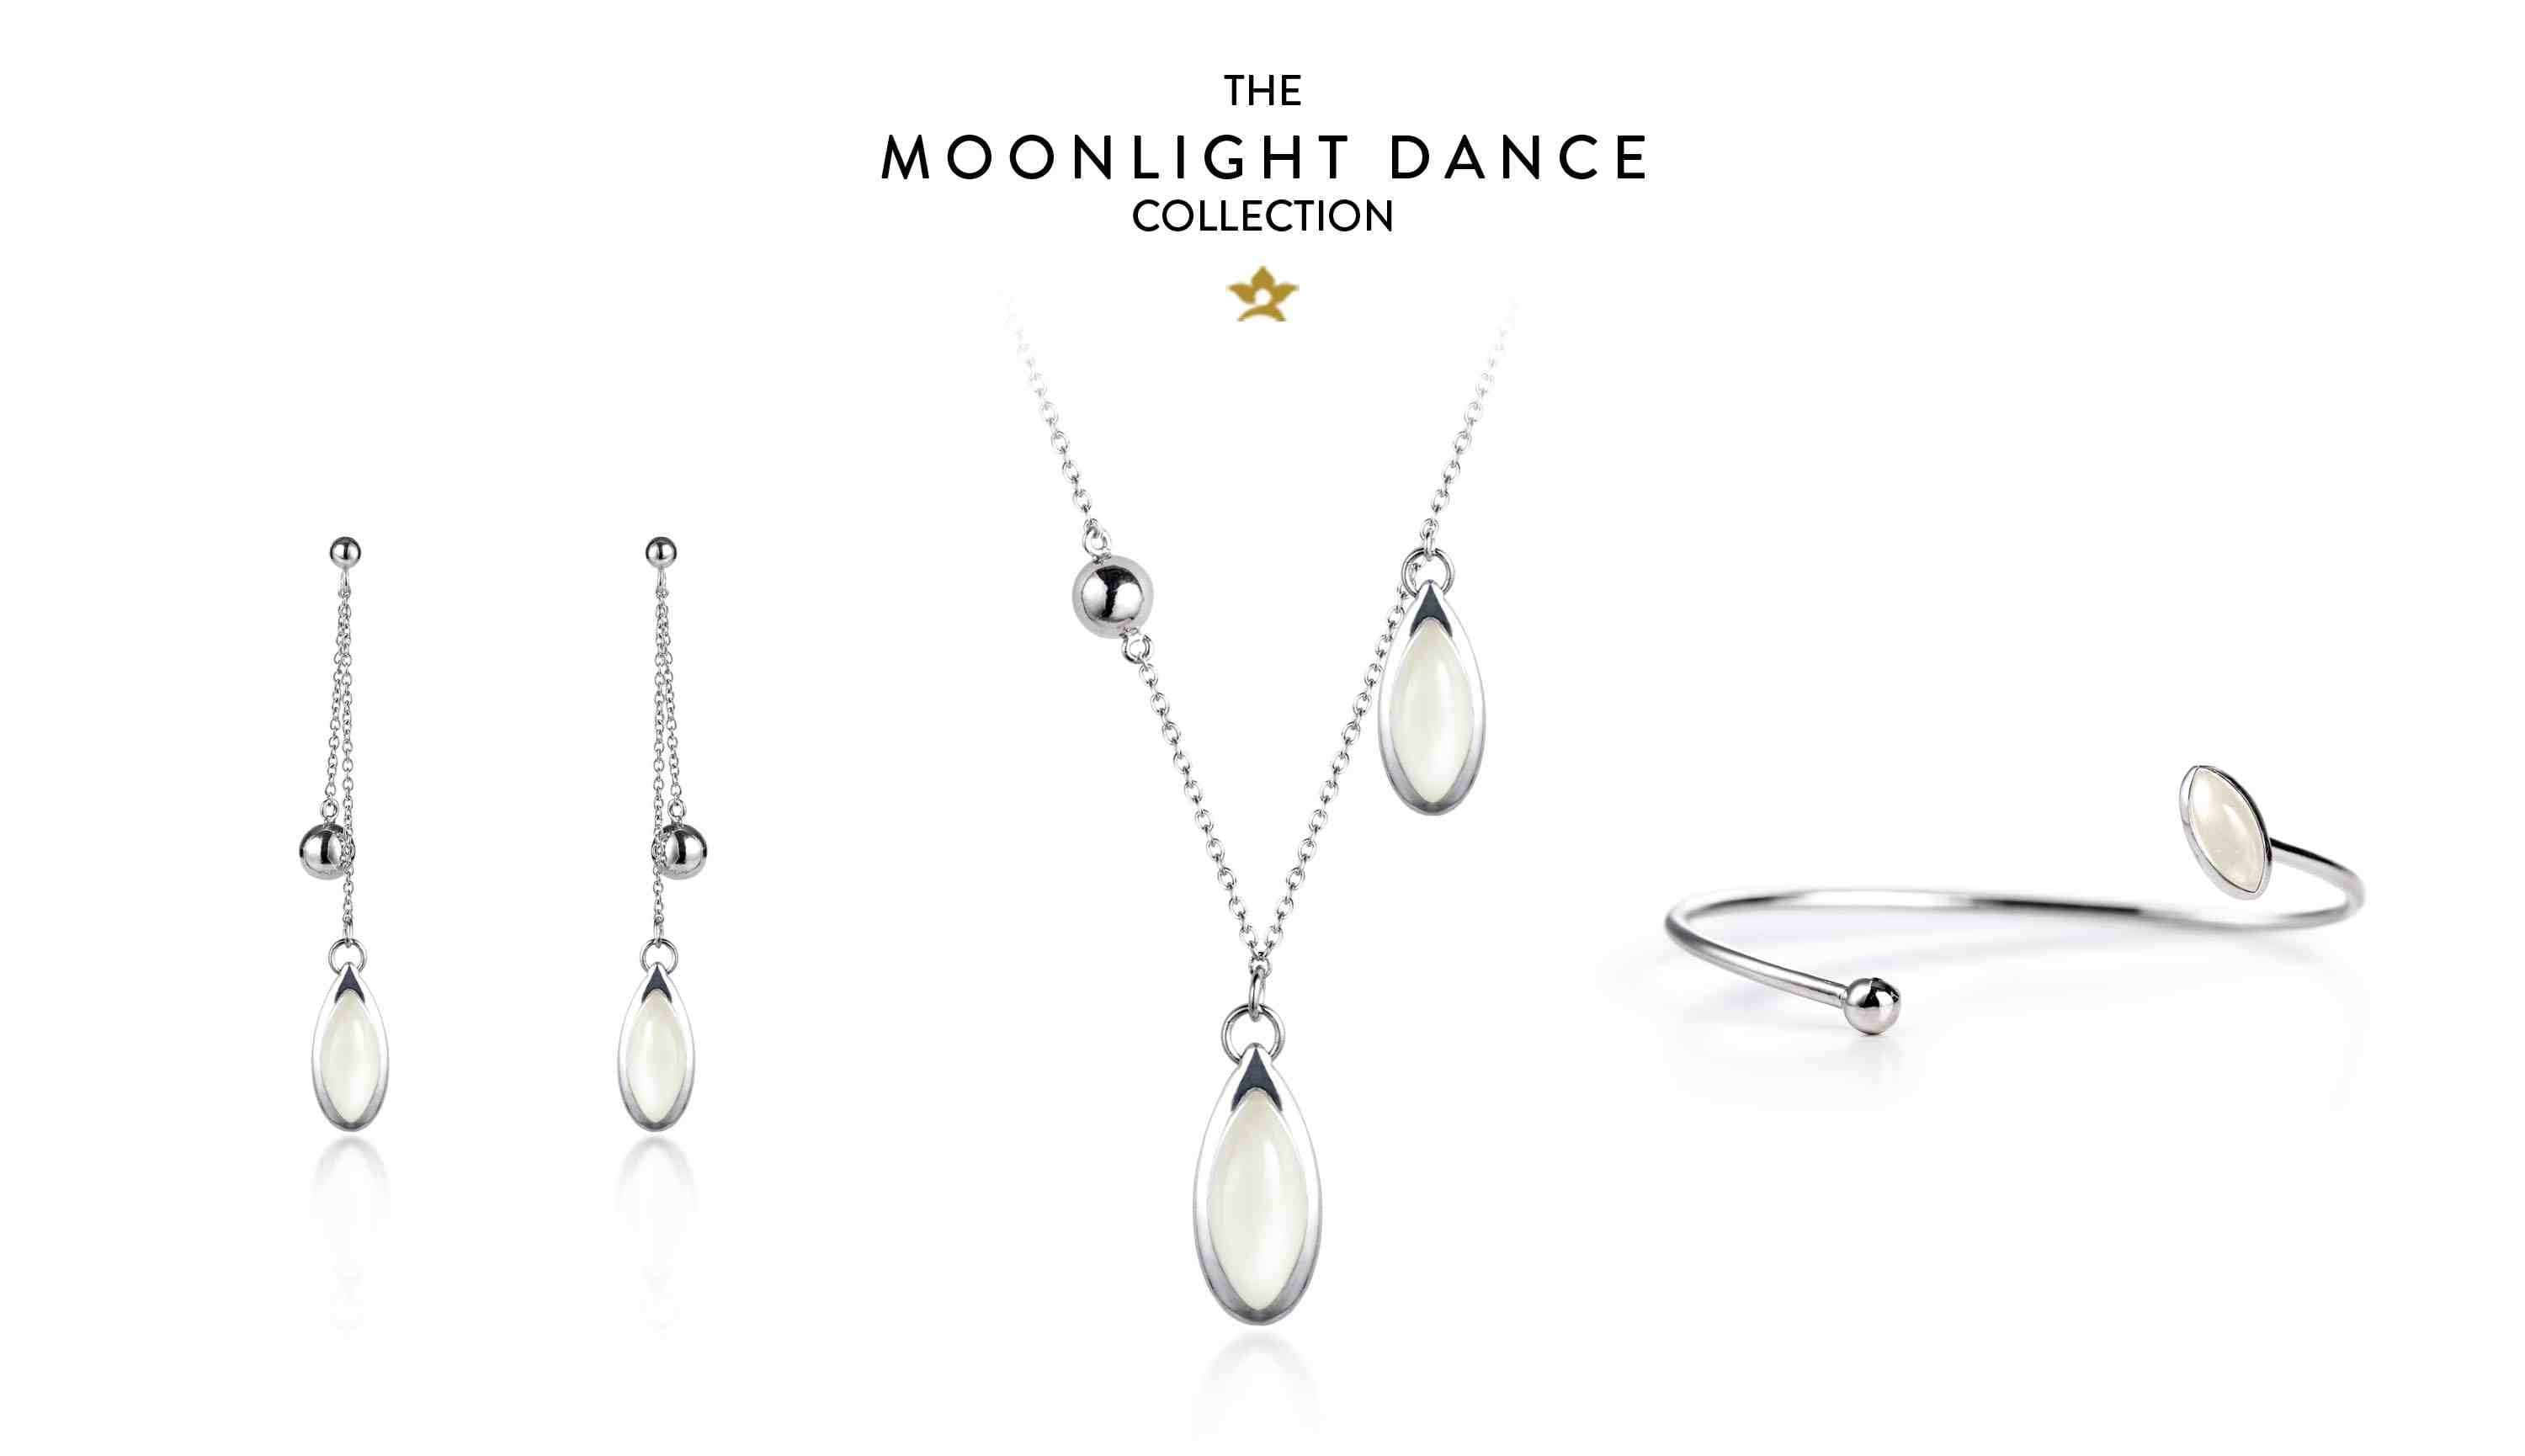 The Moonlight Dance Collection